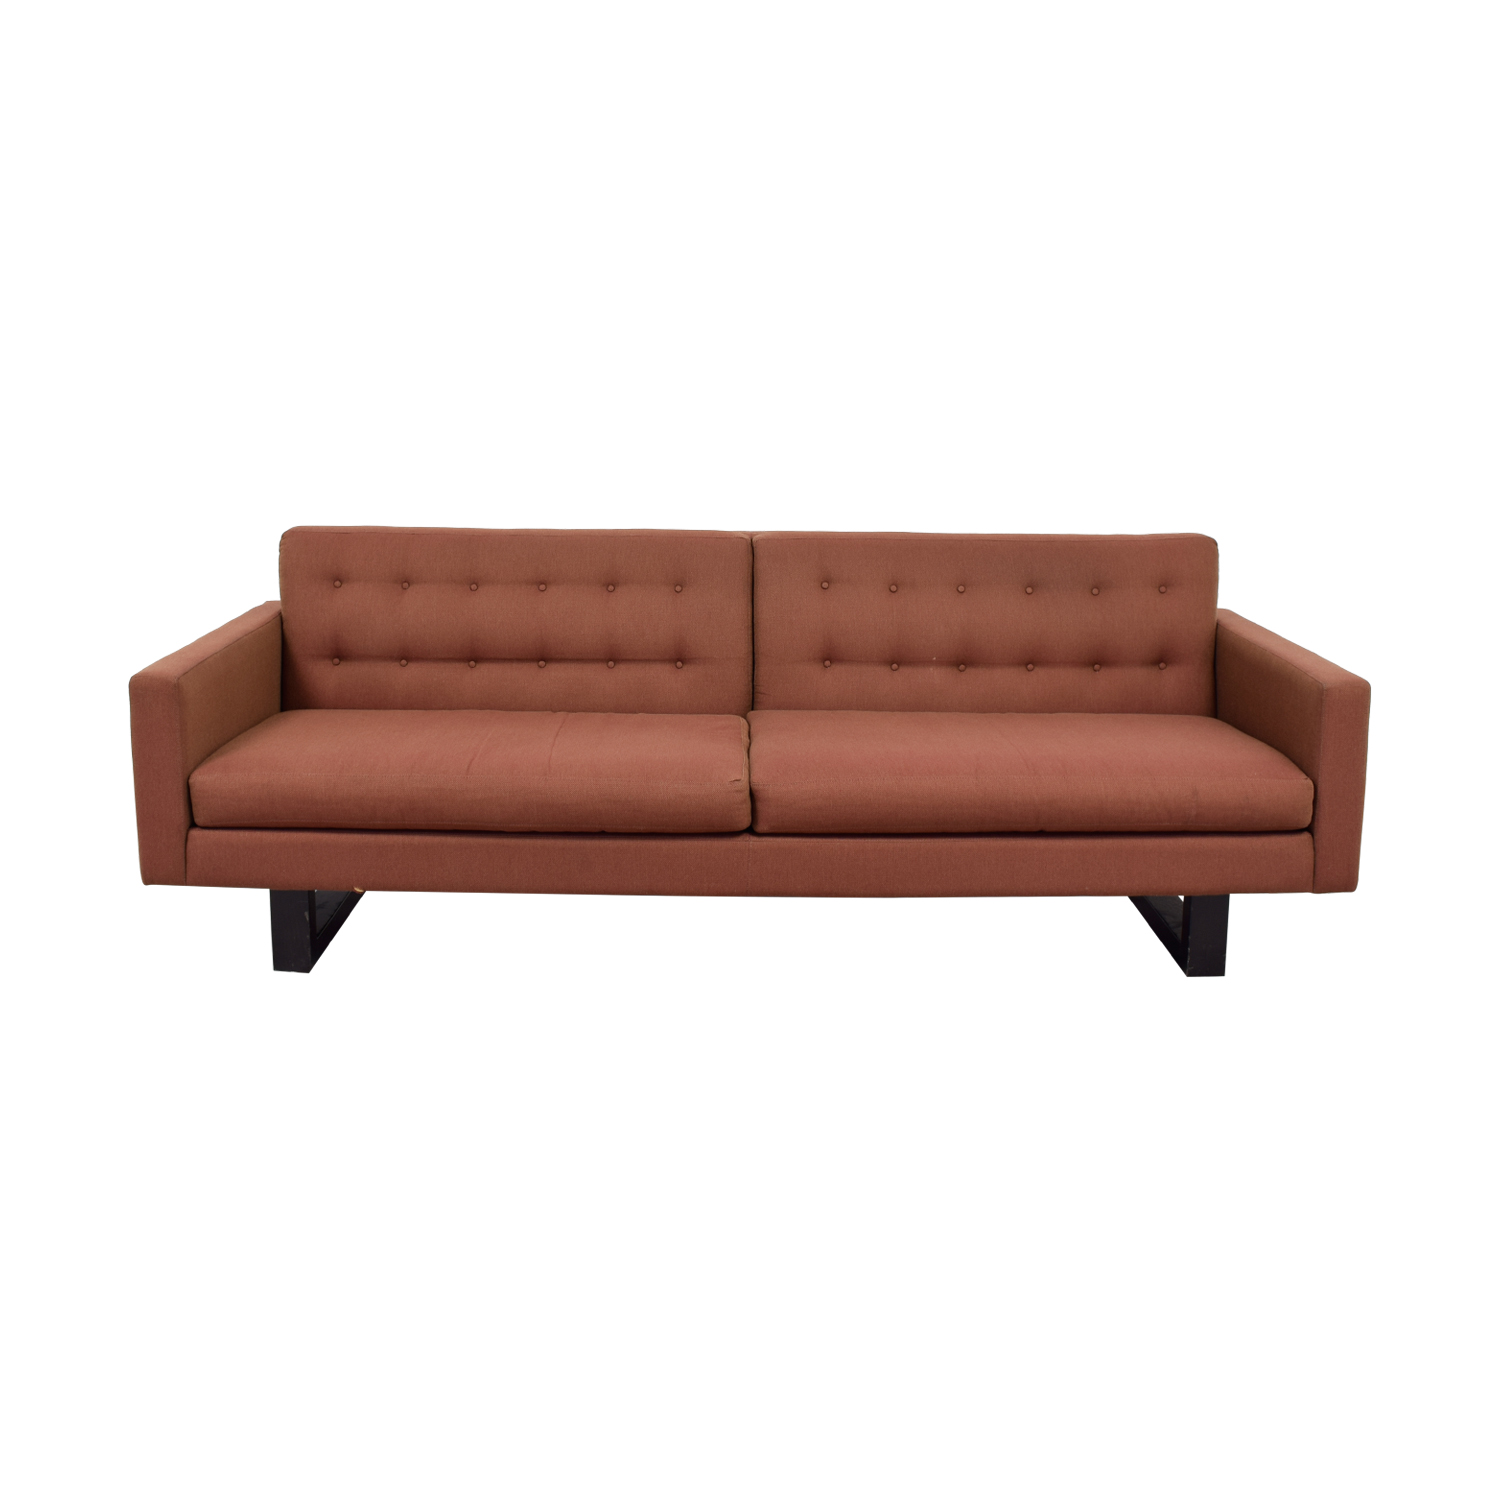 Room & Board Room & Board Wells Sofa burgundy